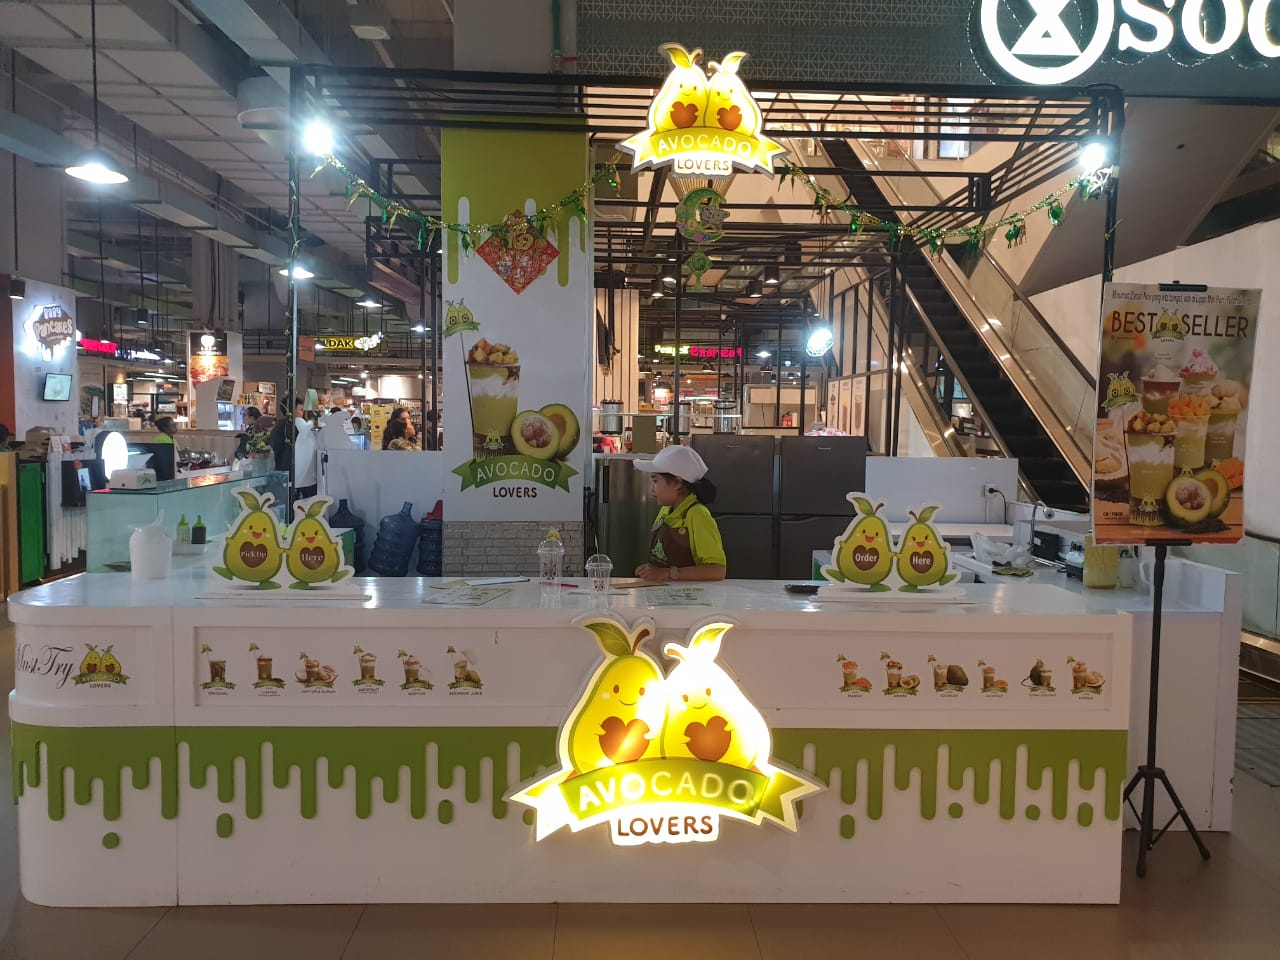 Avocado Lovers shop front in lippo mall puri st. moritz